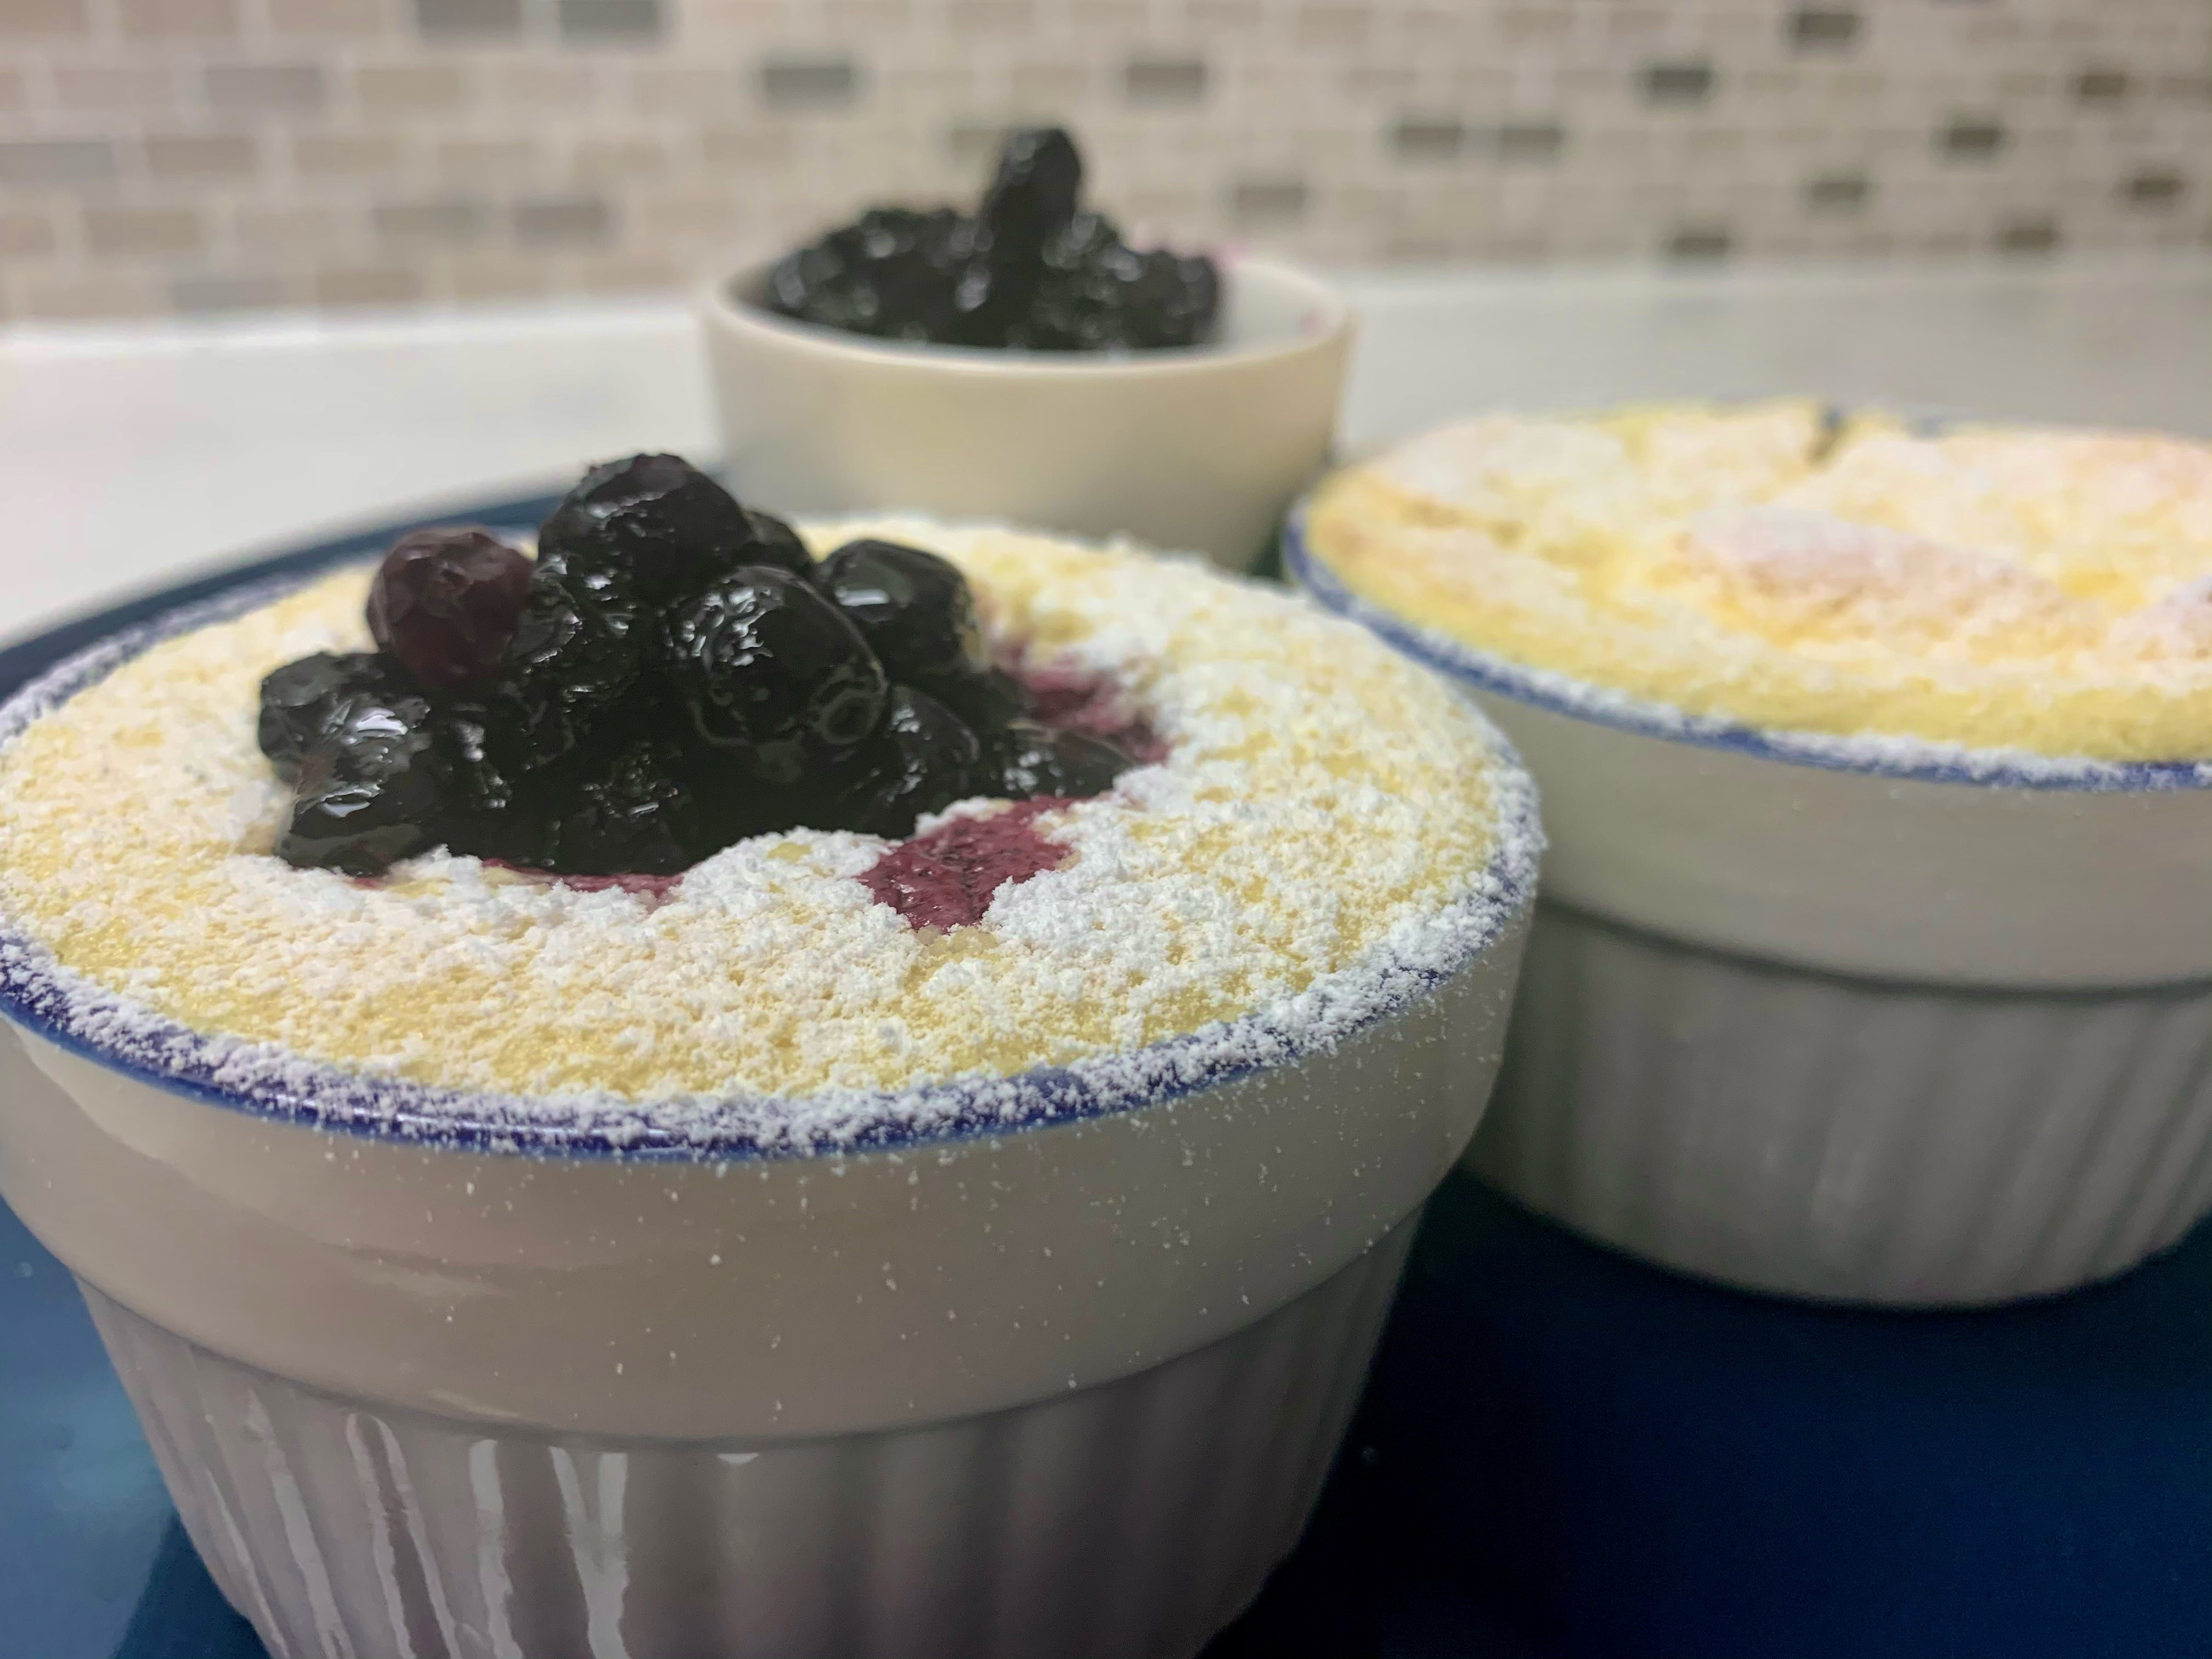 Baked Lemon Pudding With BC Blueberry Compote